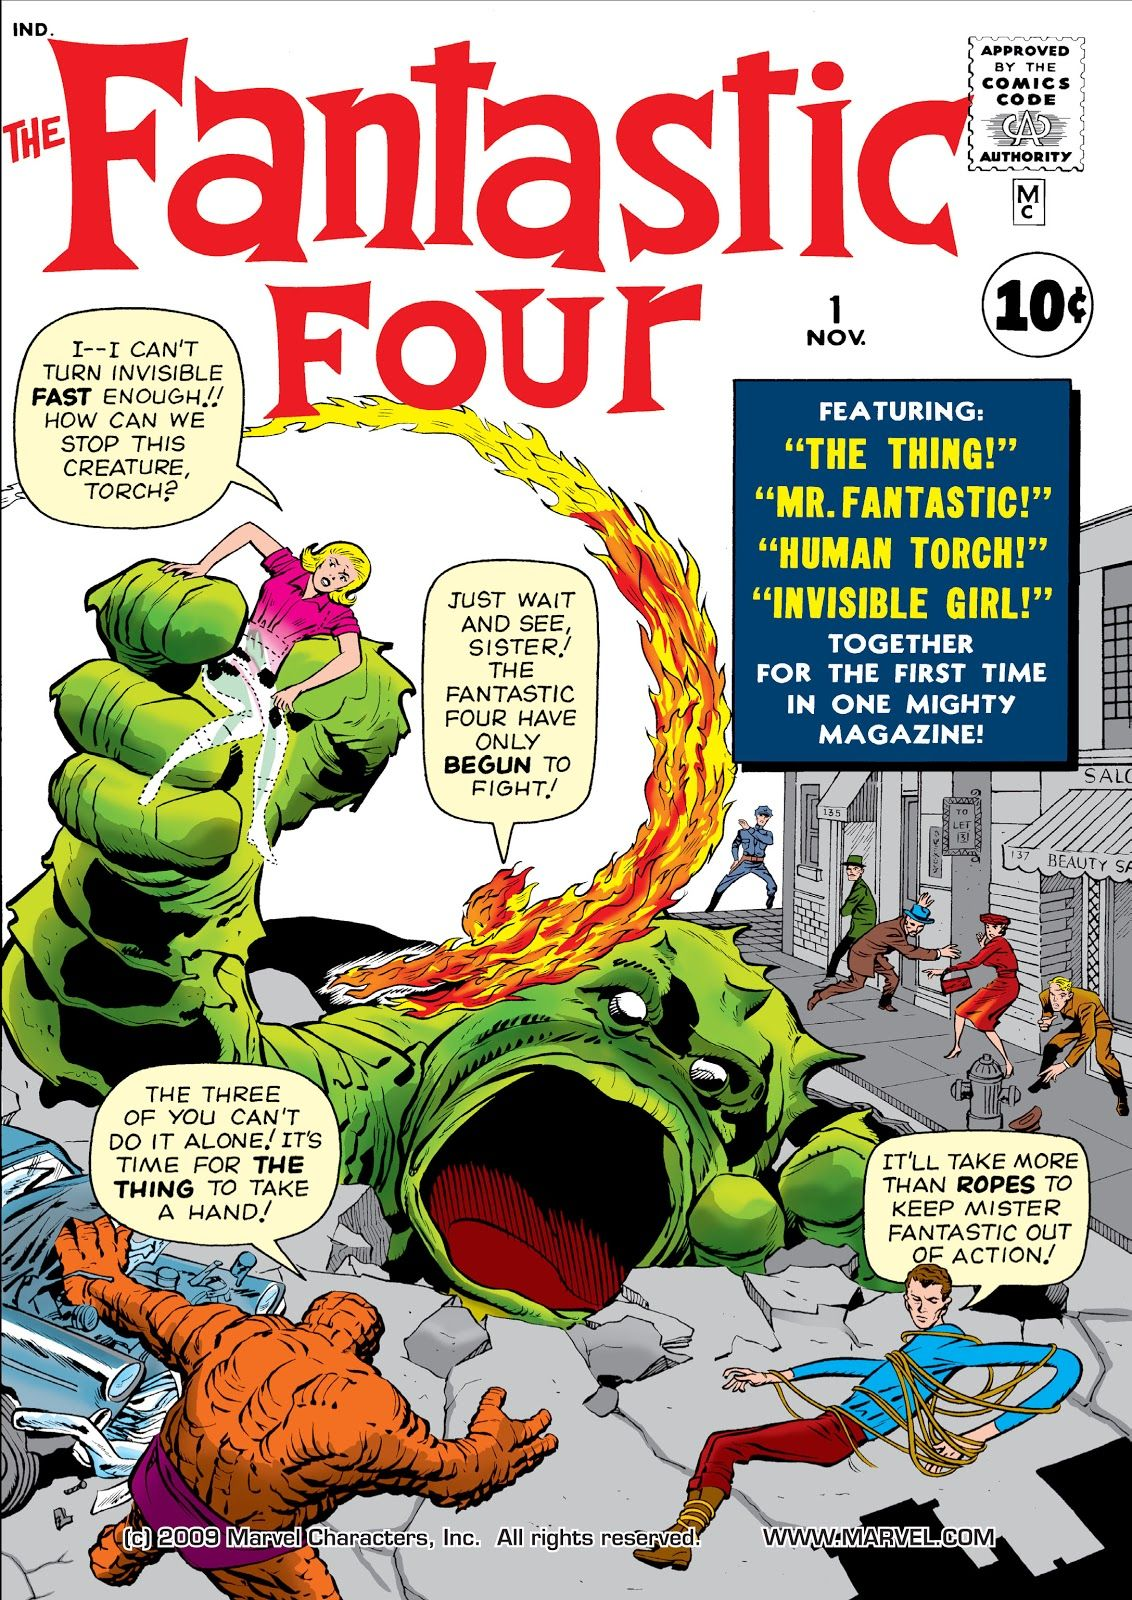 The Fantastic Four making its first appearance in 1961's Fantastic Four #1.